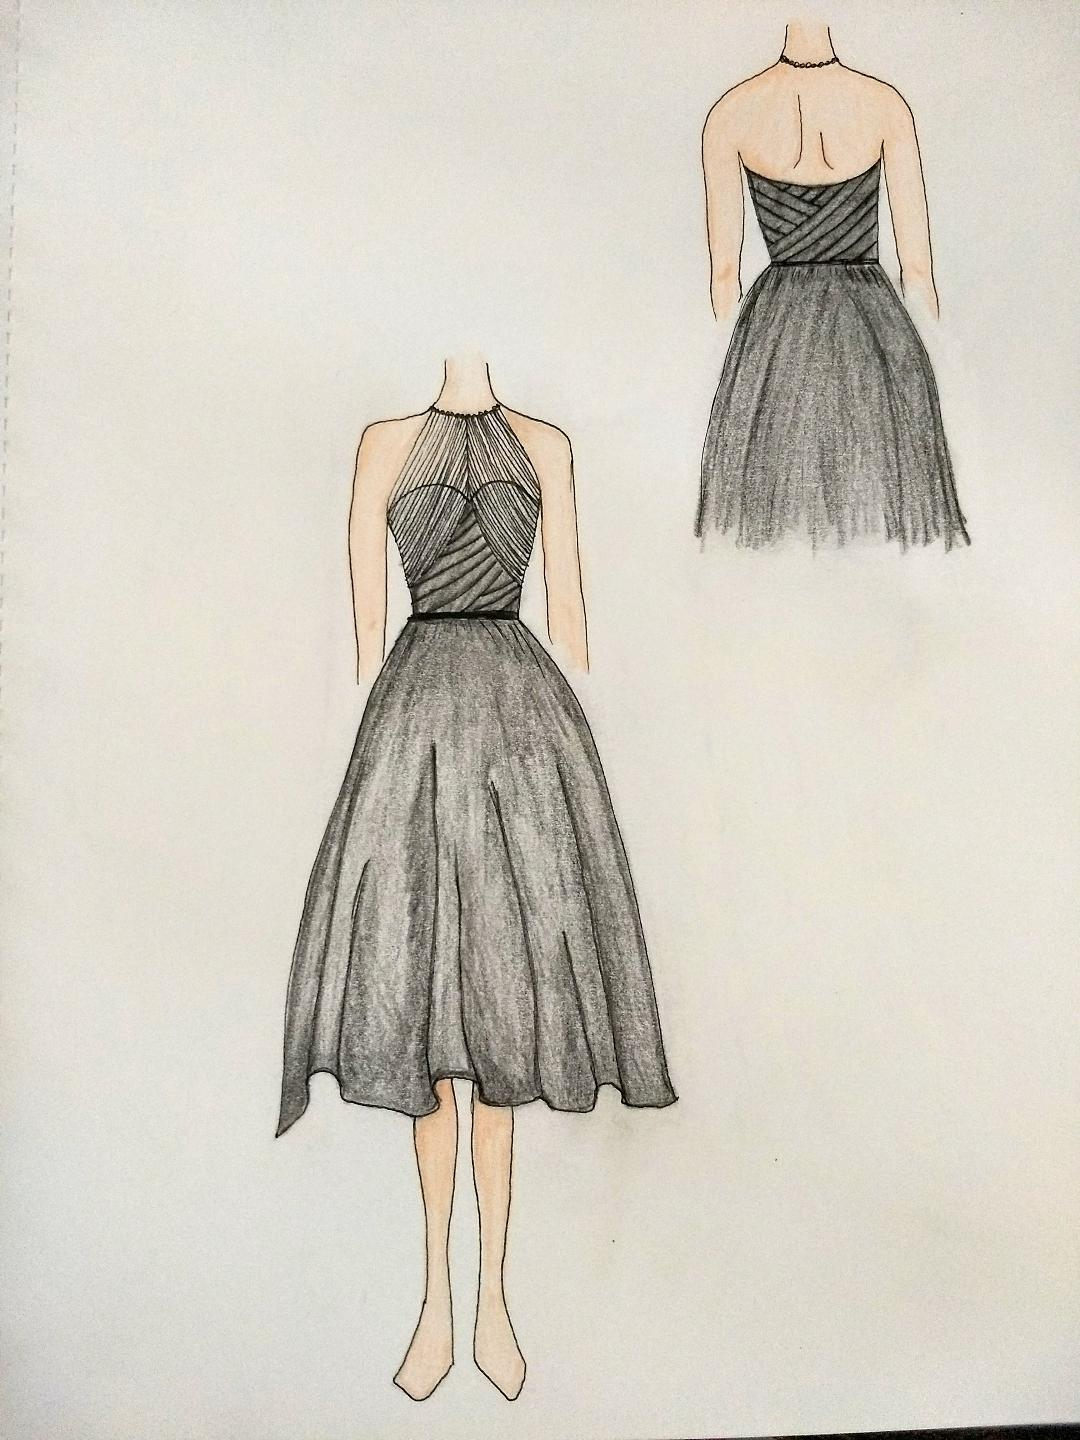 Kat's Bridesmaid Dress Sketch